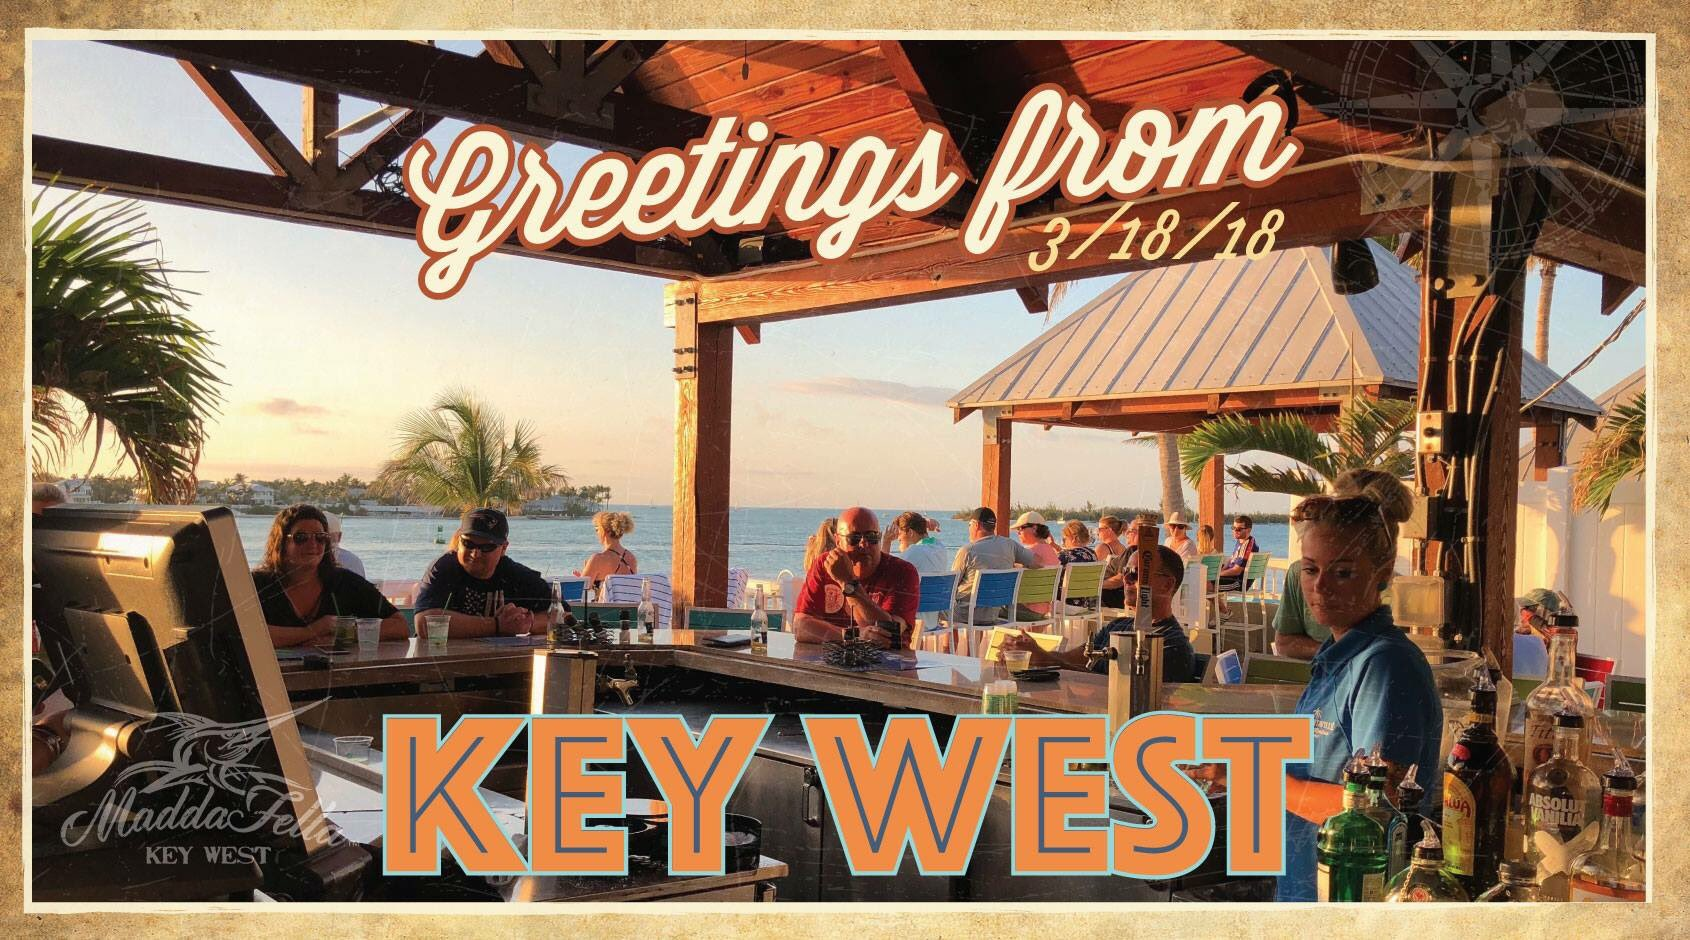 Great place to wrap up the weekend! #maddafella #keywest https://t.co/sfrRWauS9r https://t.co/GFPdE838cY